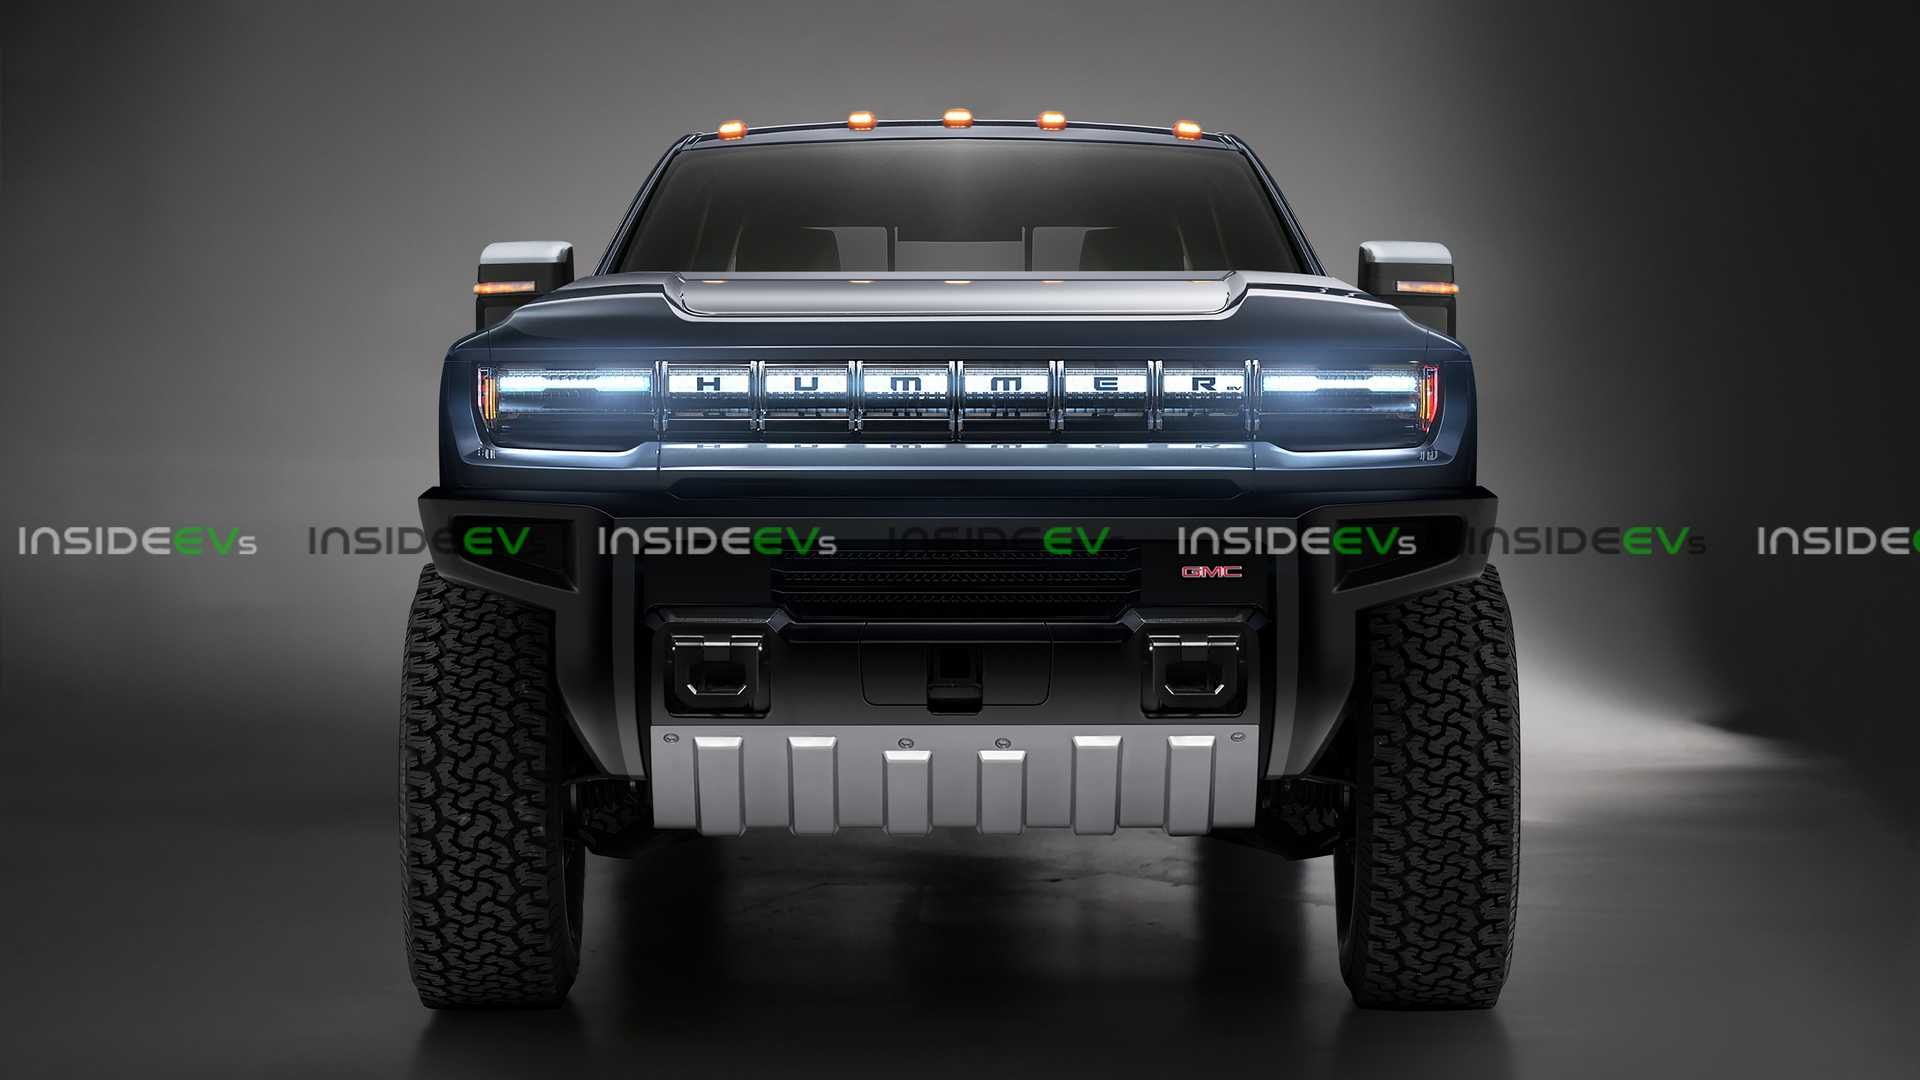 Hummer Electric Pickup Truck Looks Big & Rugged In Exclusive Render